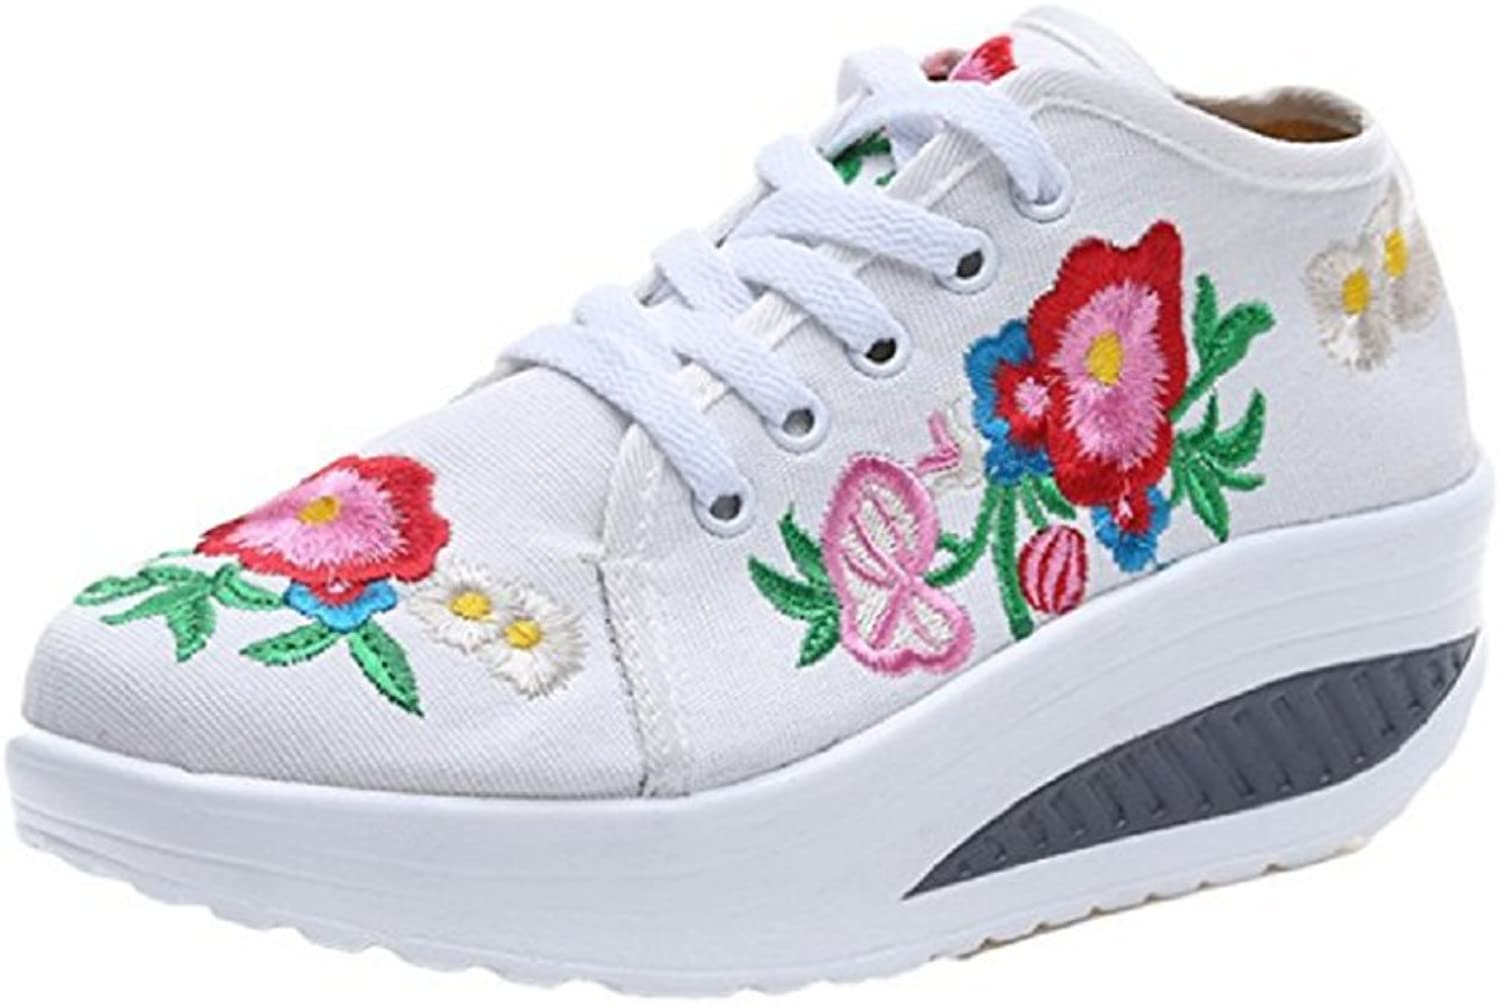 Tianrui Crown Women and Ladies Embroidery Lace Up Platform Casual Sneaker shoes